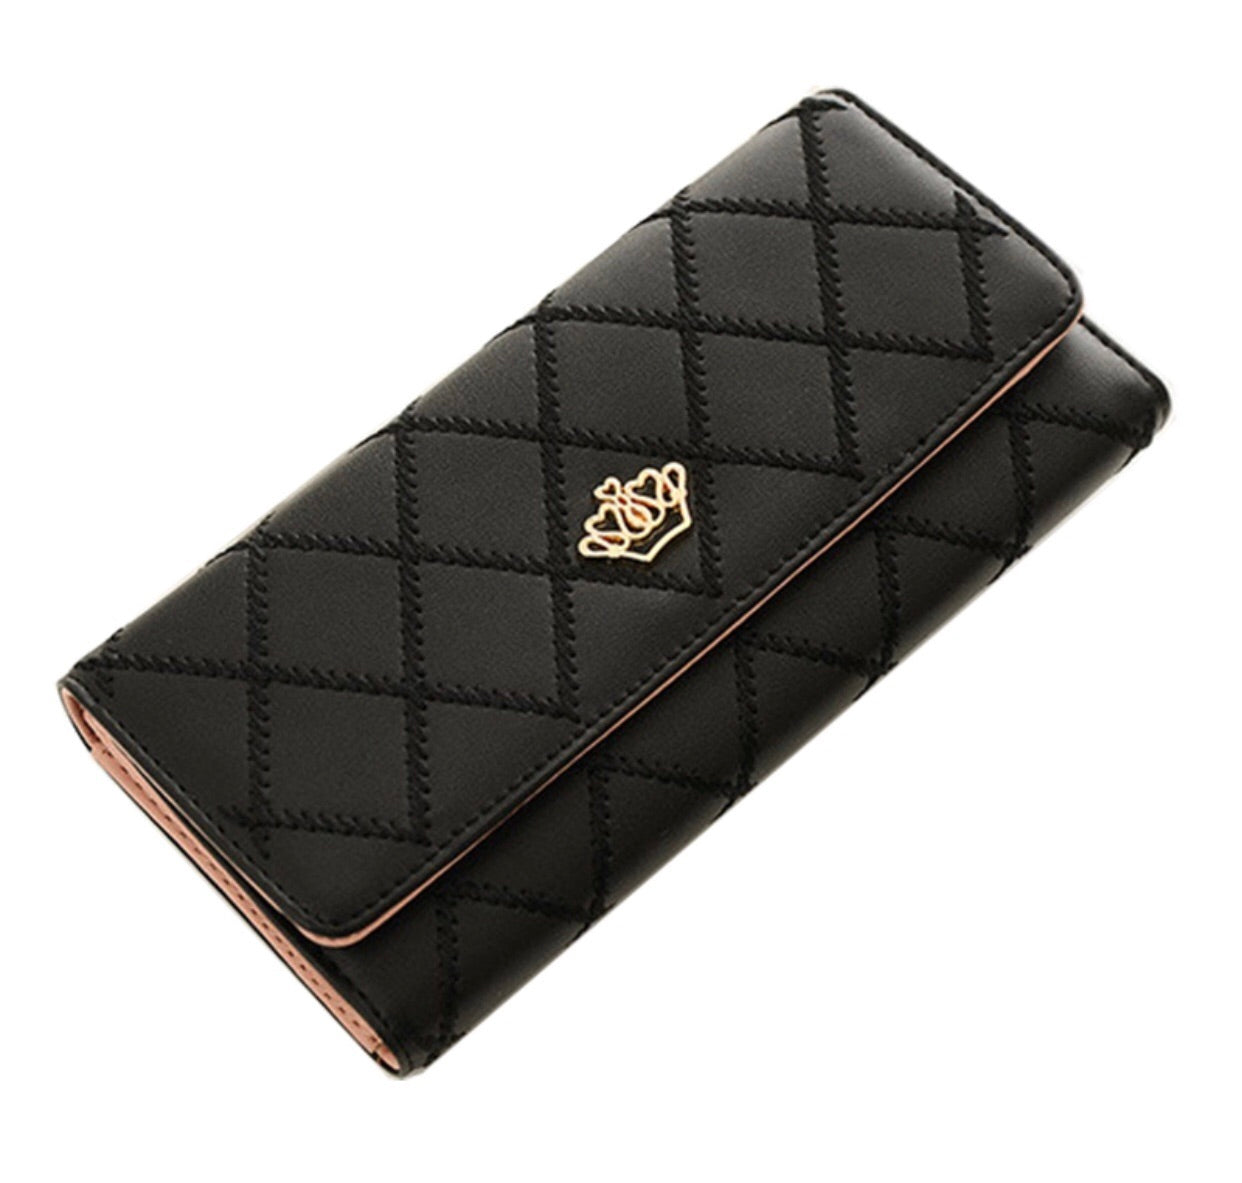 Beautiful Queen crown elegance wallet